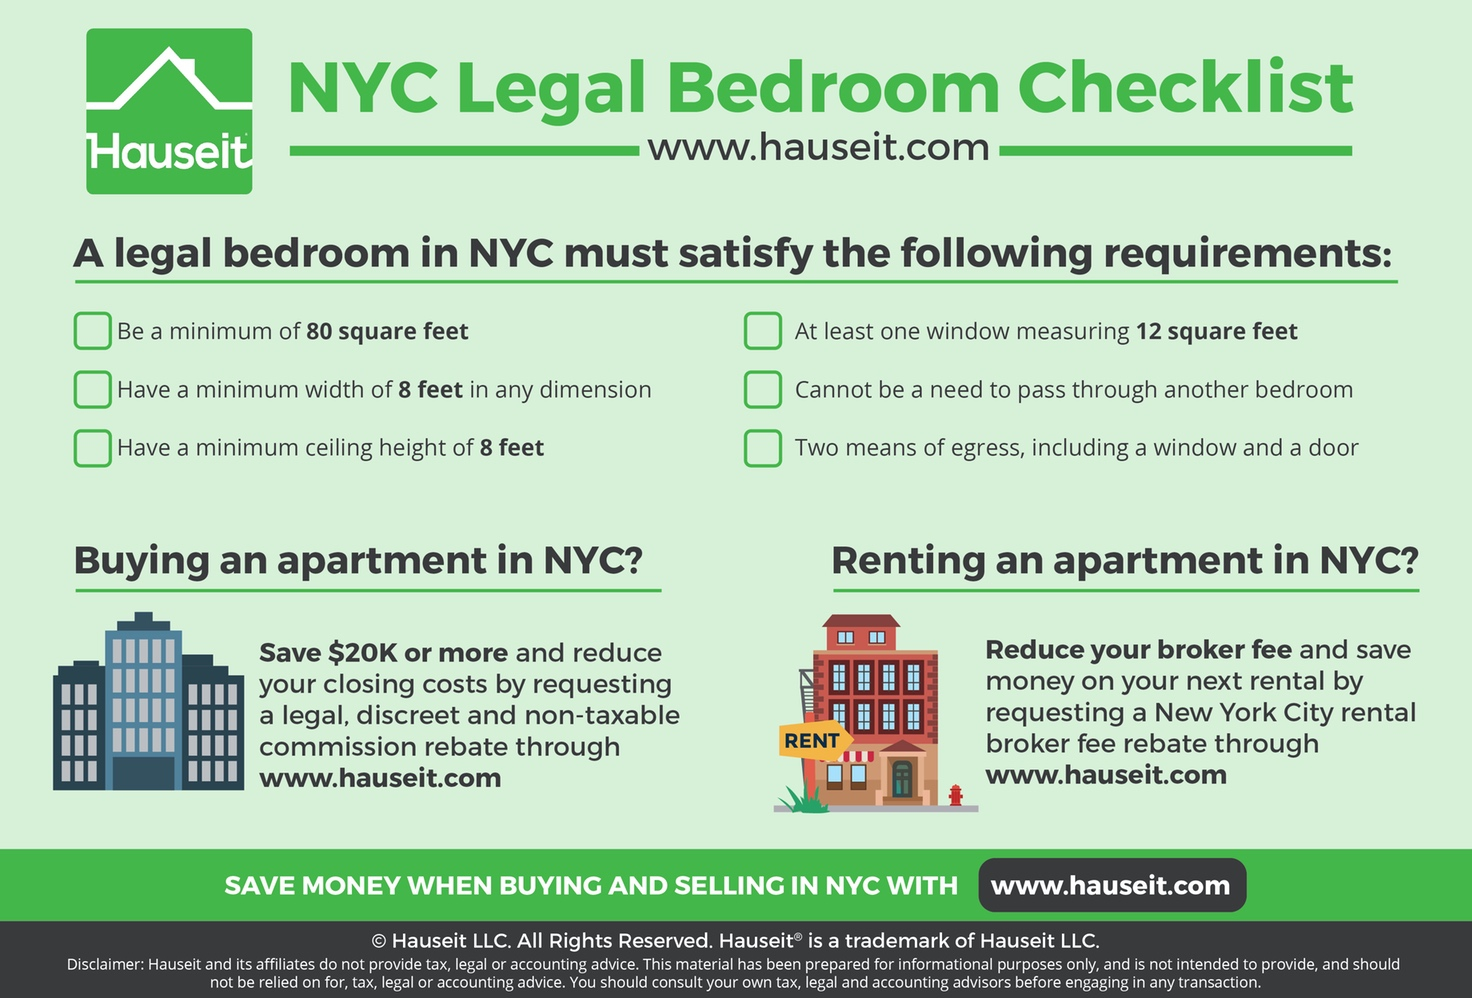 A legal bedroom in NYC must satisfy specific requirements for square footage, width, ceiling height, window size and ease of access.